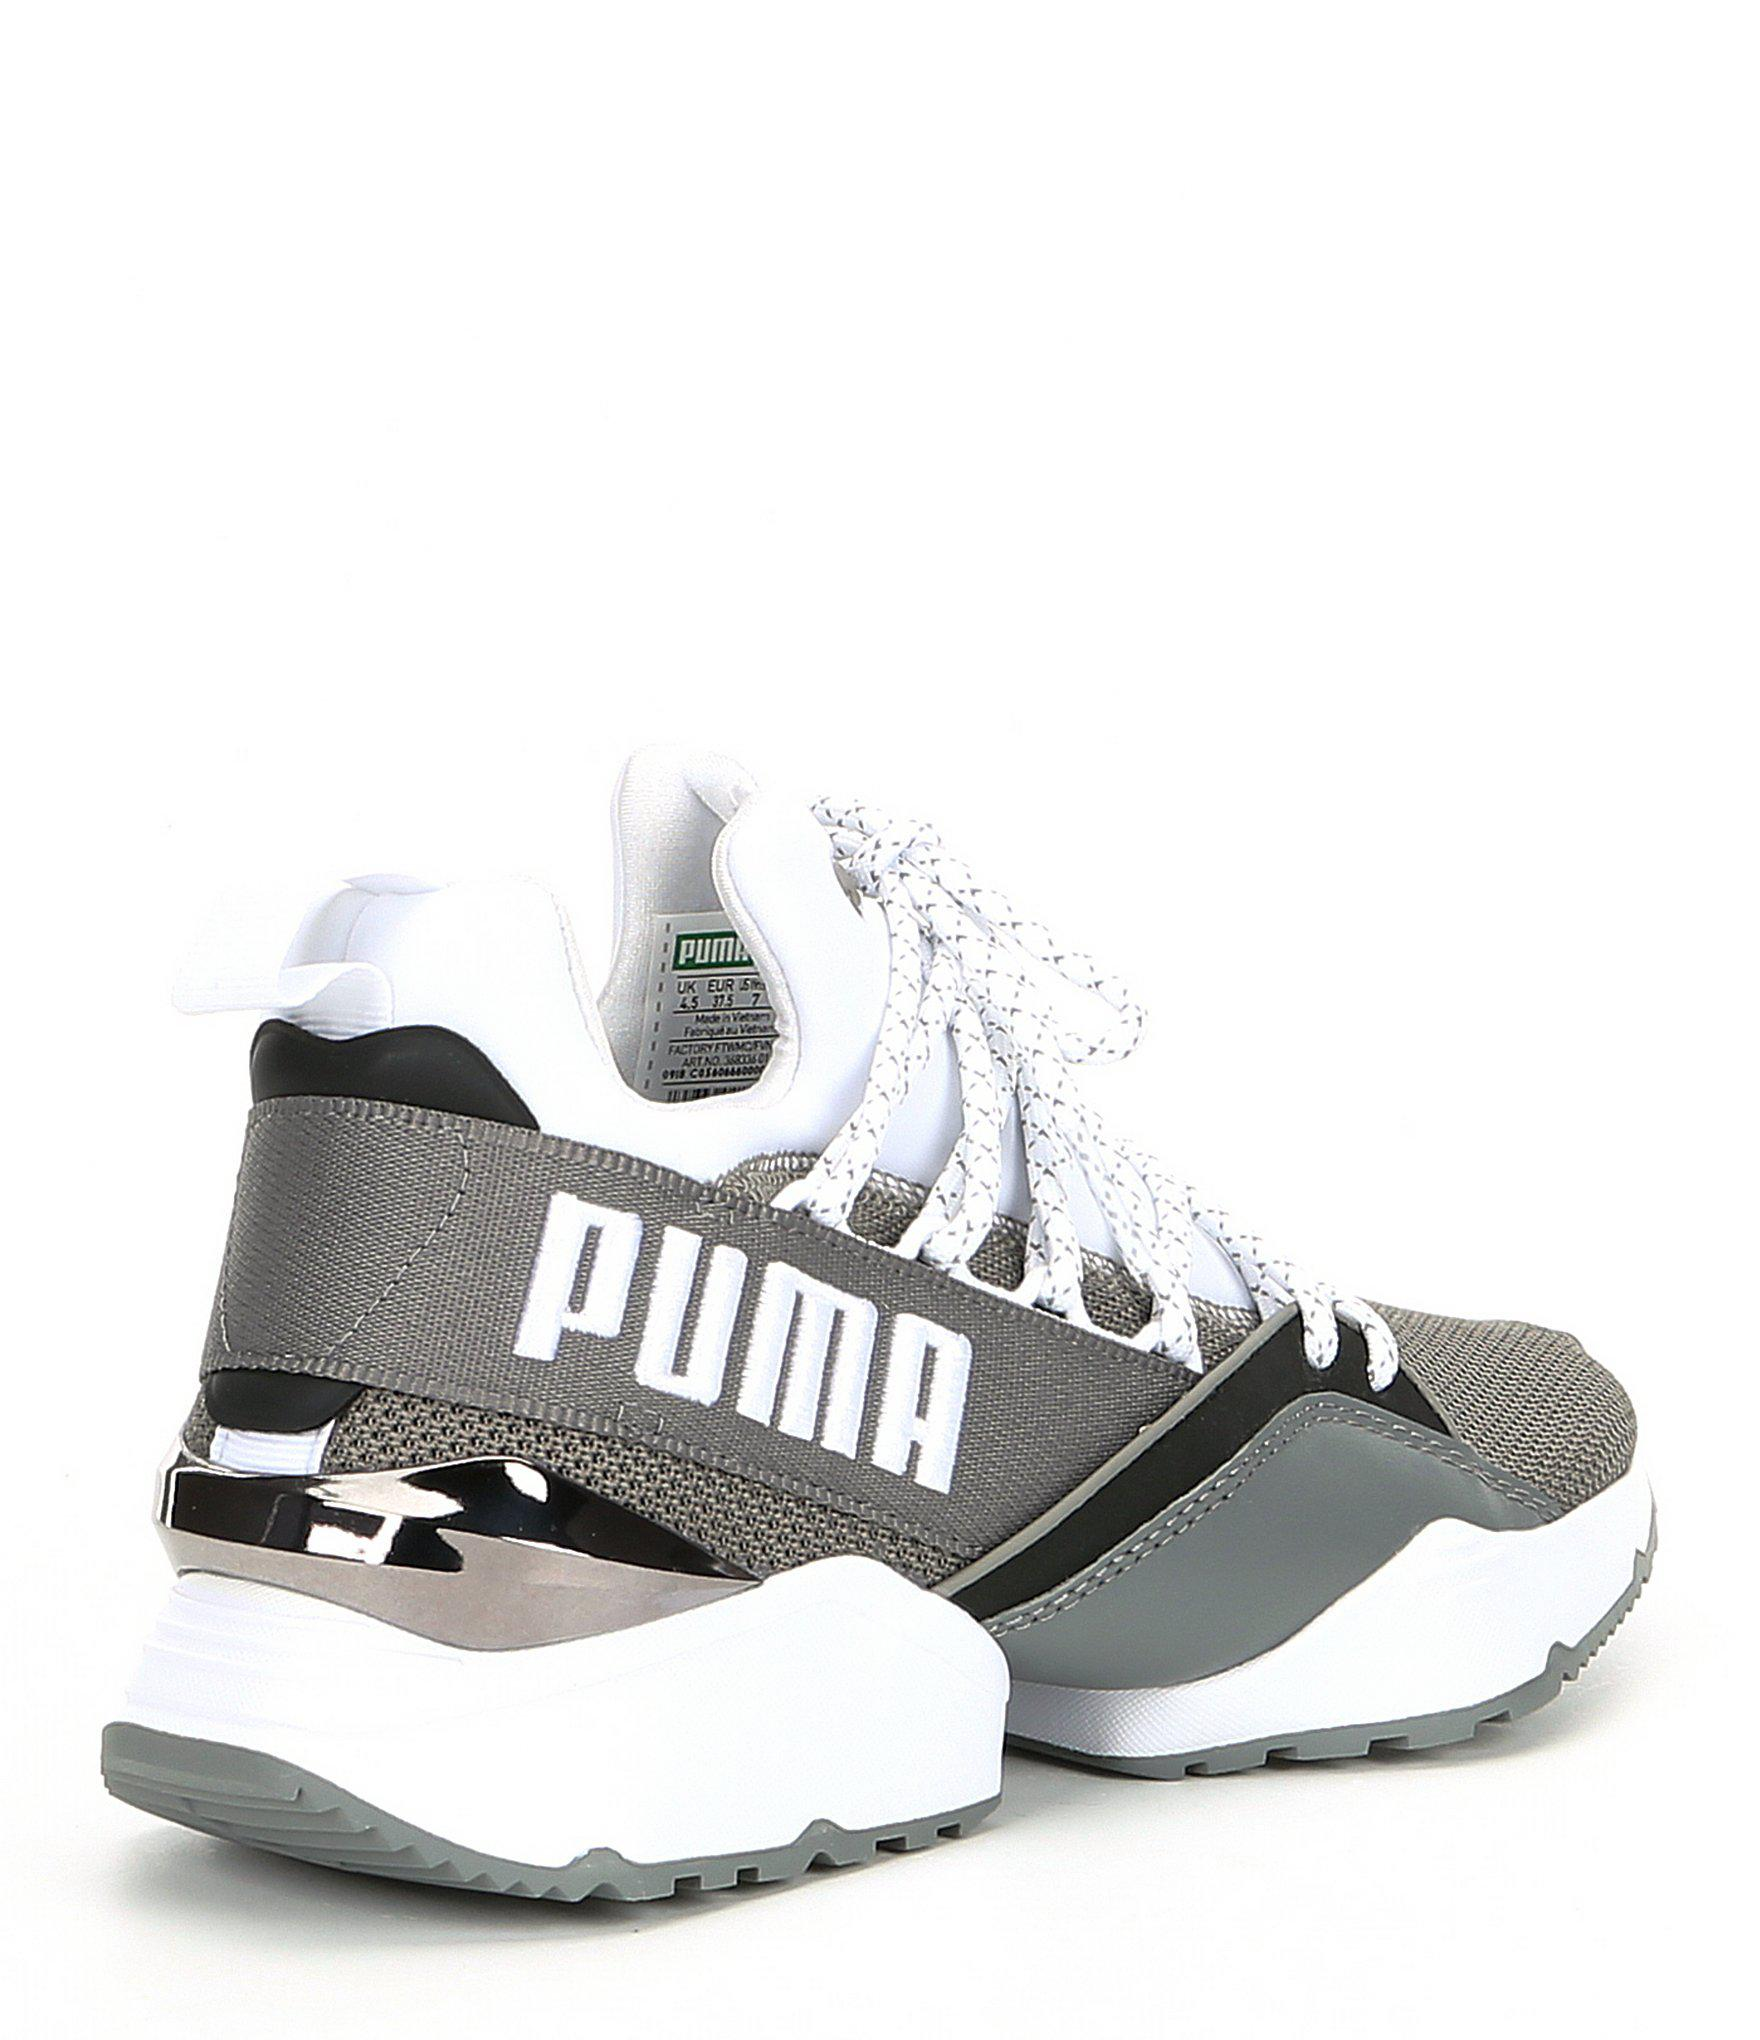 16554a7df16 Lyst - PUMA Women s Muse Maia Sneakers in Gray